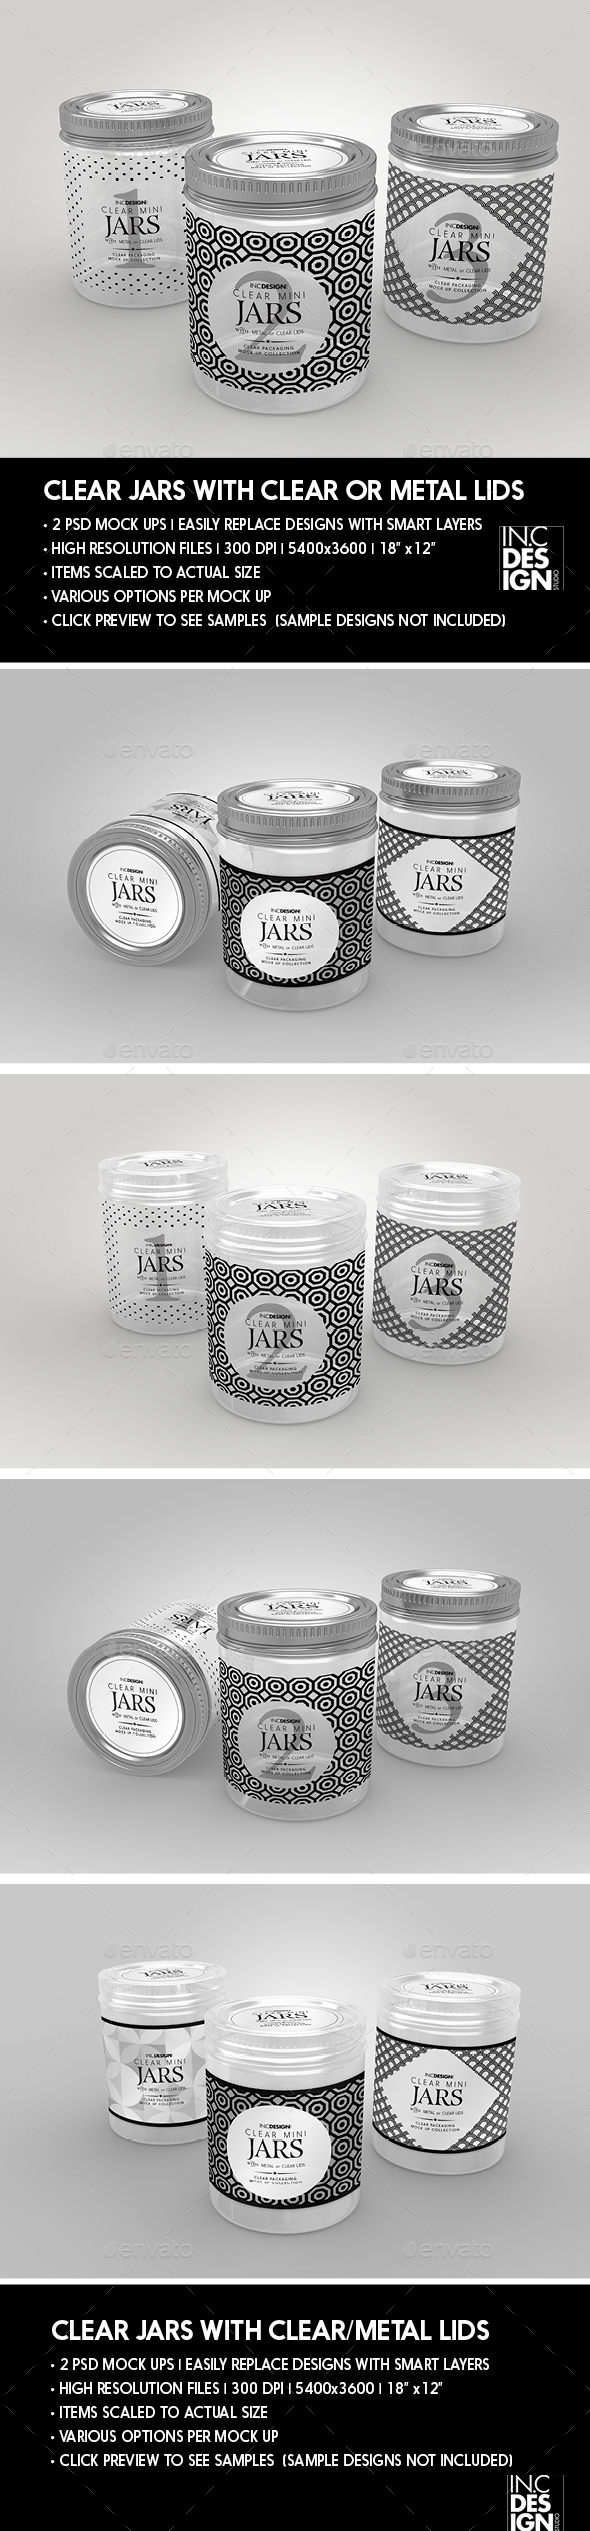 Clear Jars Packaging Mock up with Clear or Metal Lids - Packaging Product Mock-Ups